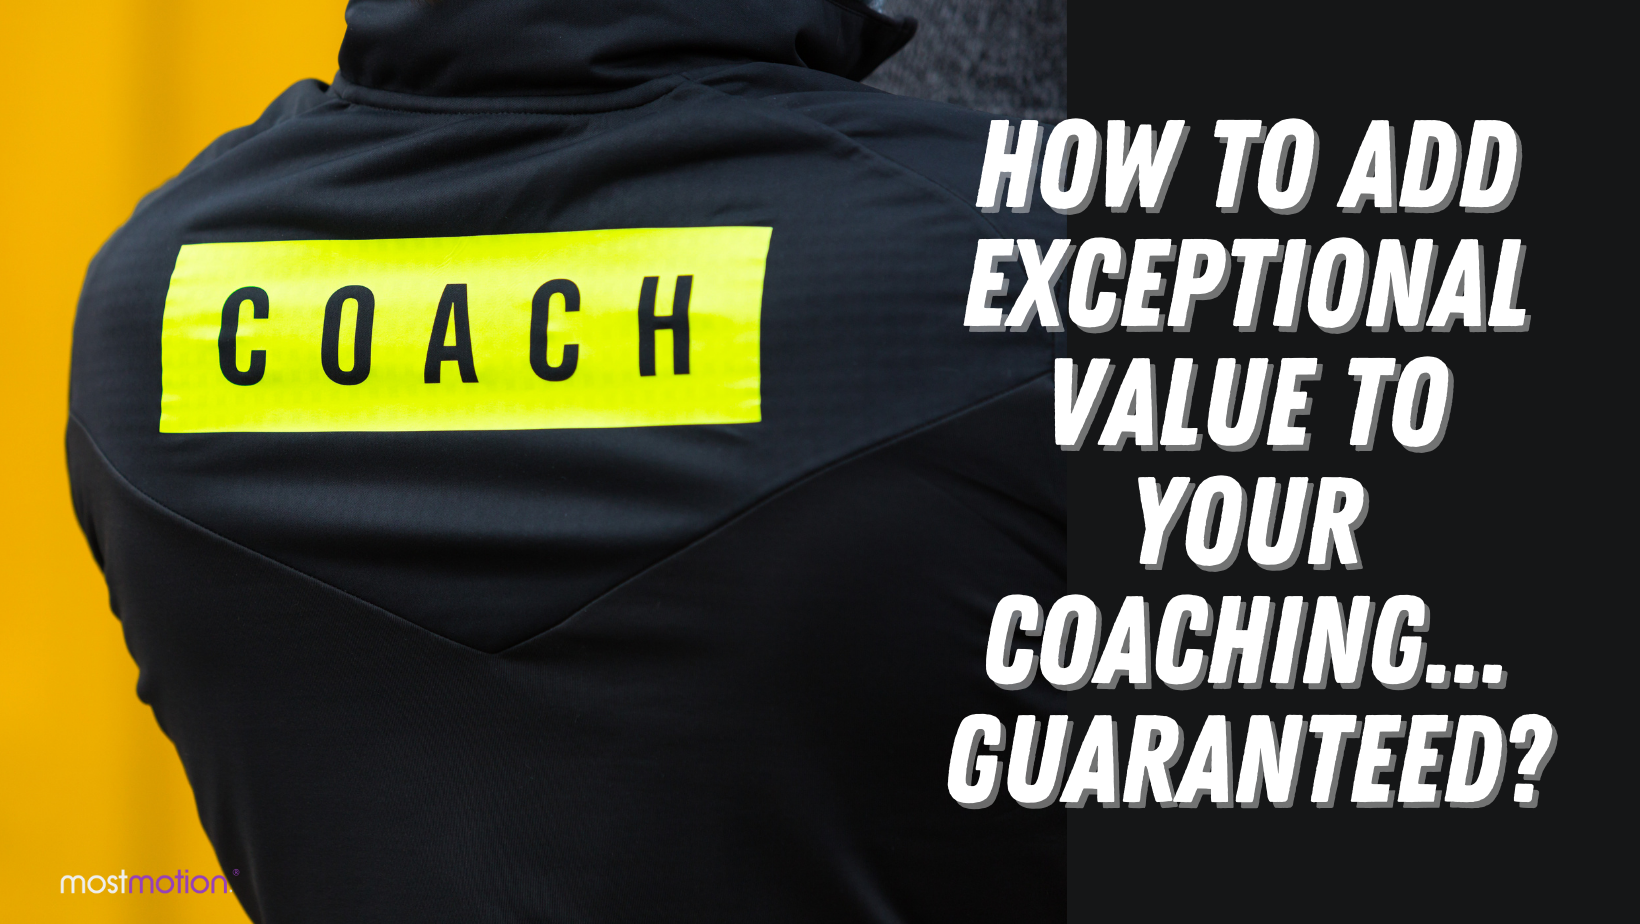 How to Add Exceptional Value to Your Coaching… Guaranteed?